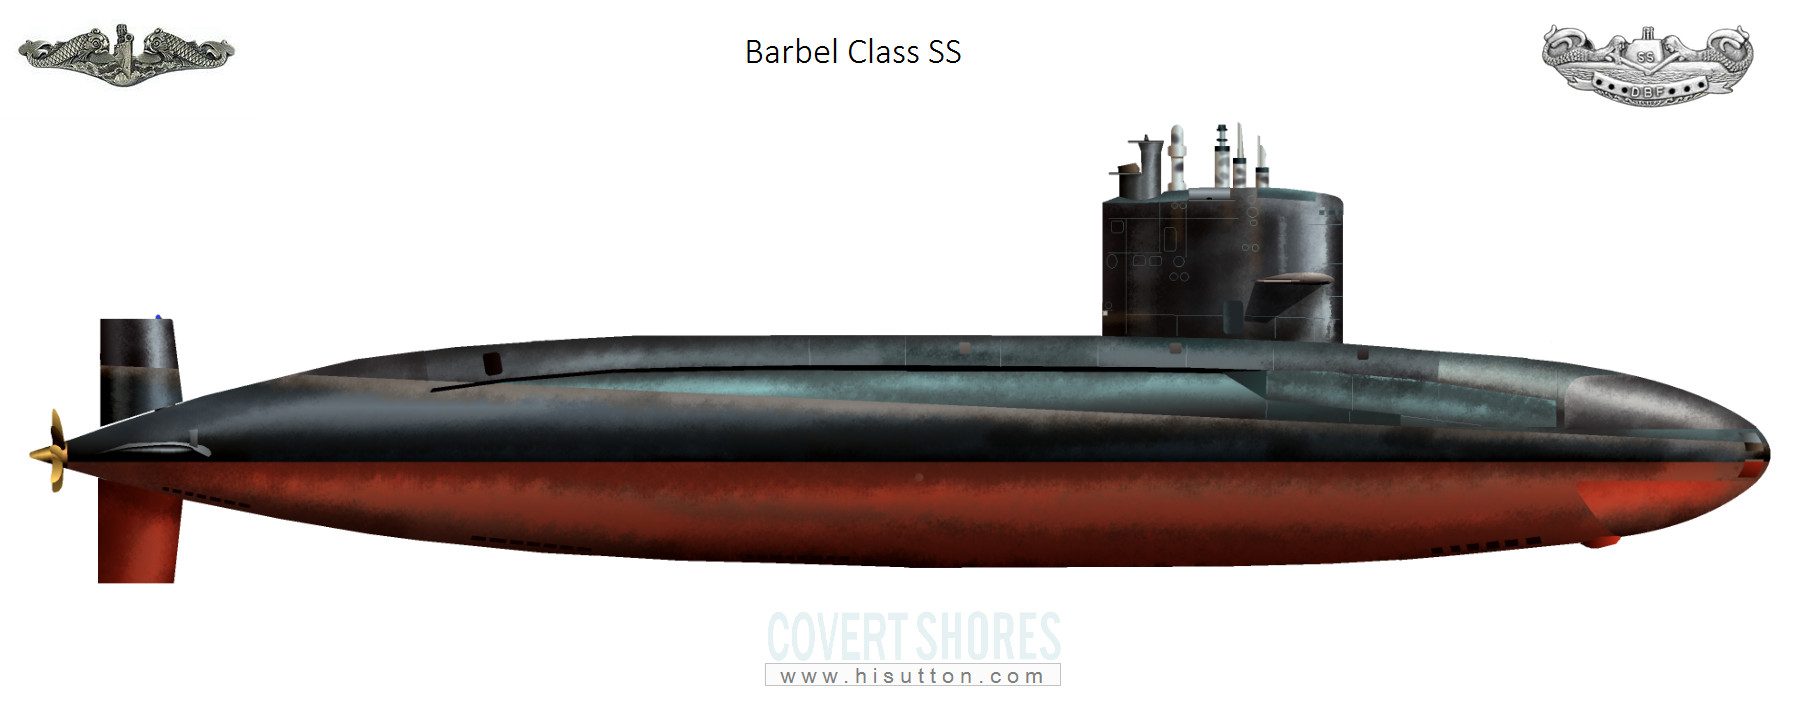 hight resolution of the last us navy diesel subs barbel class